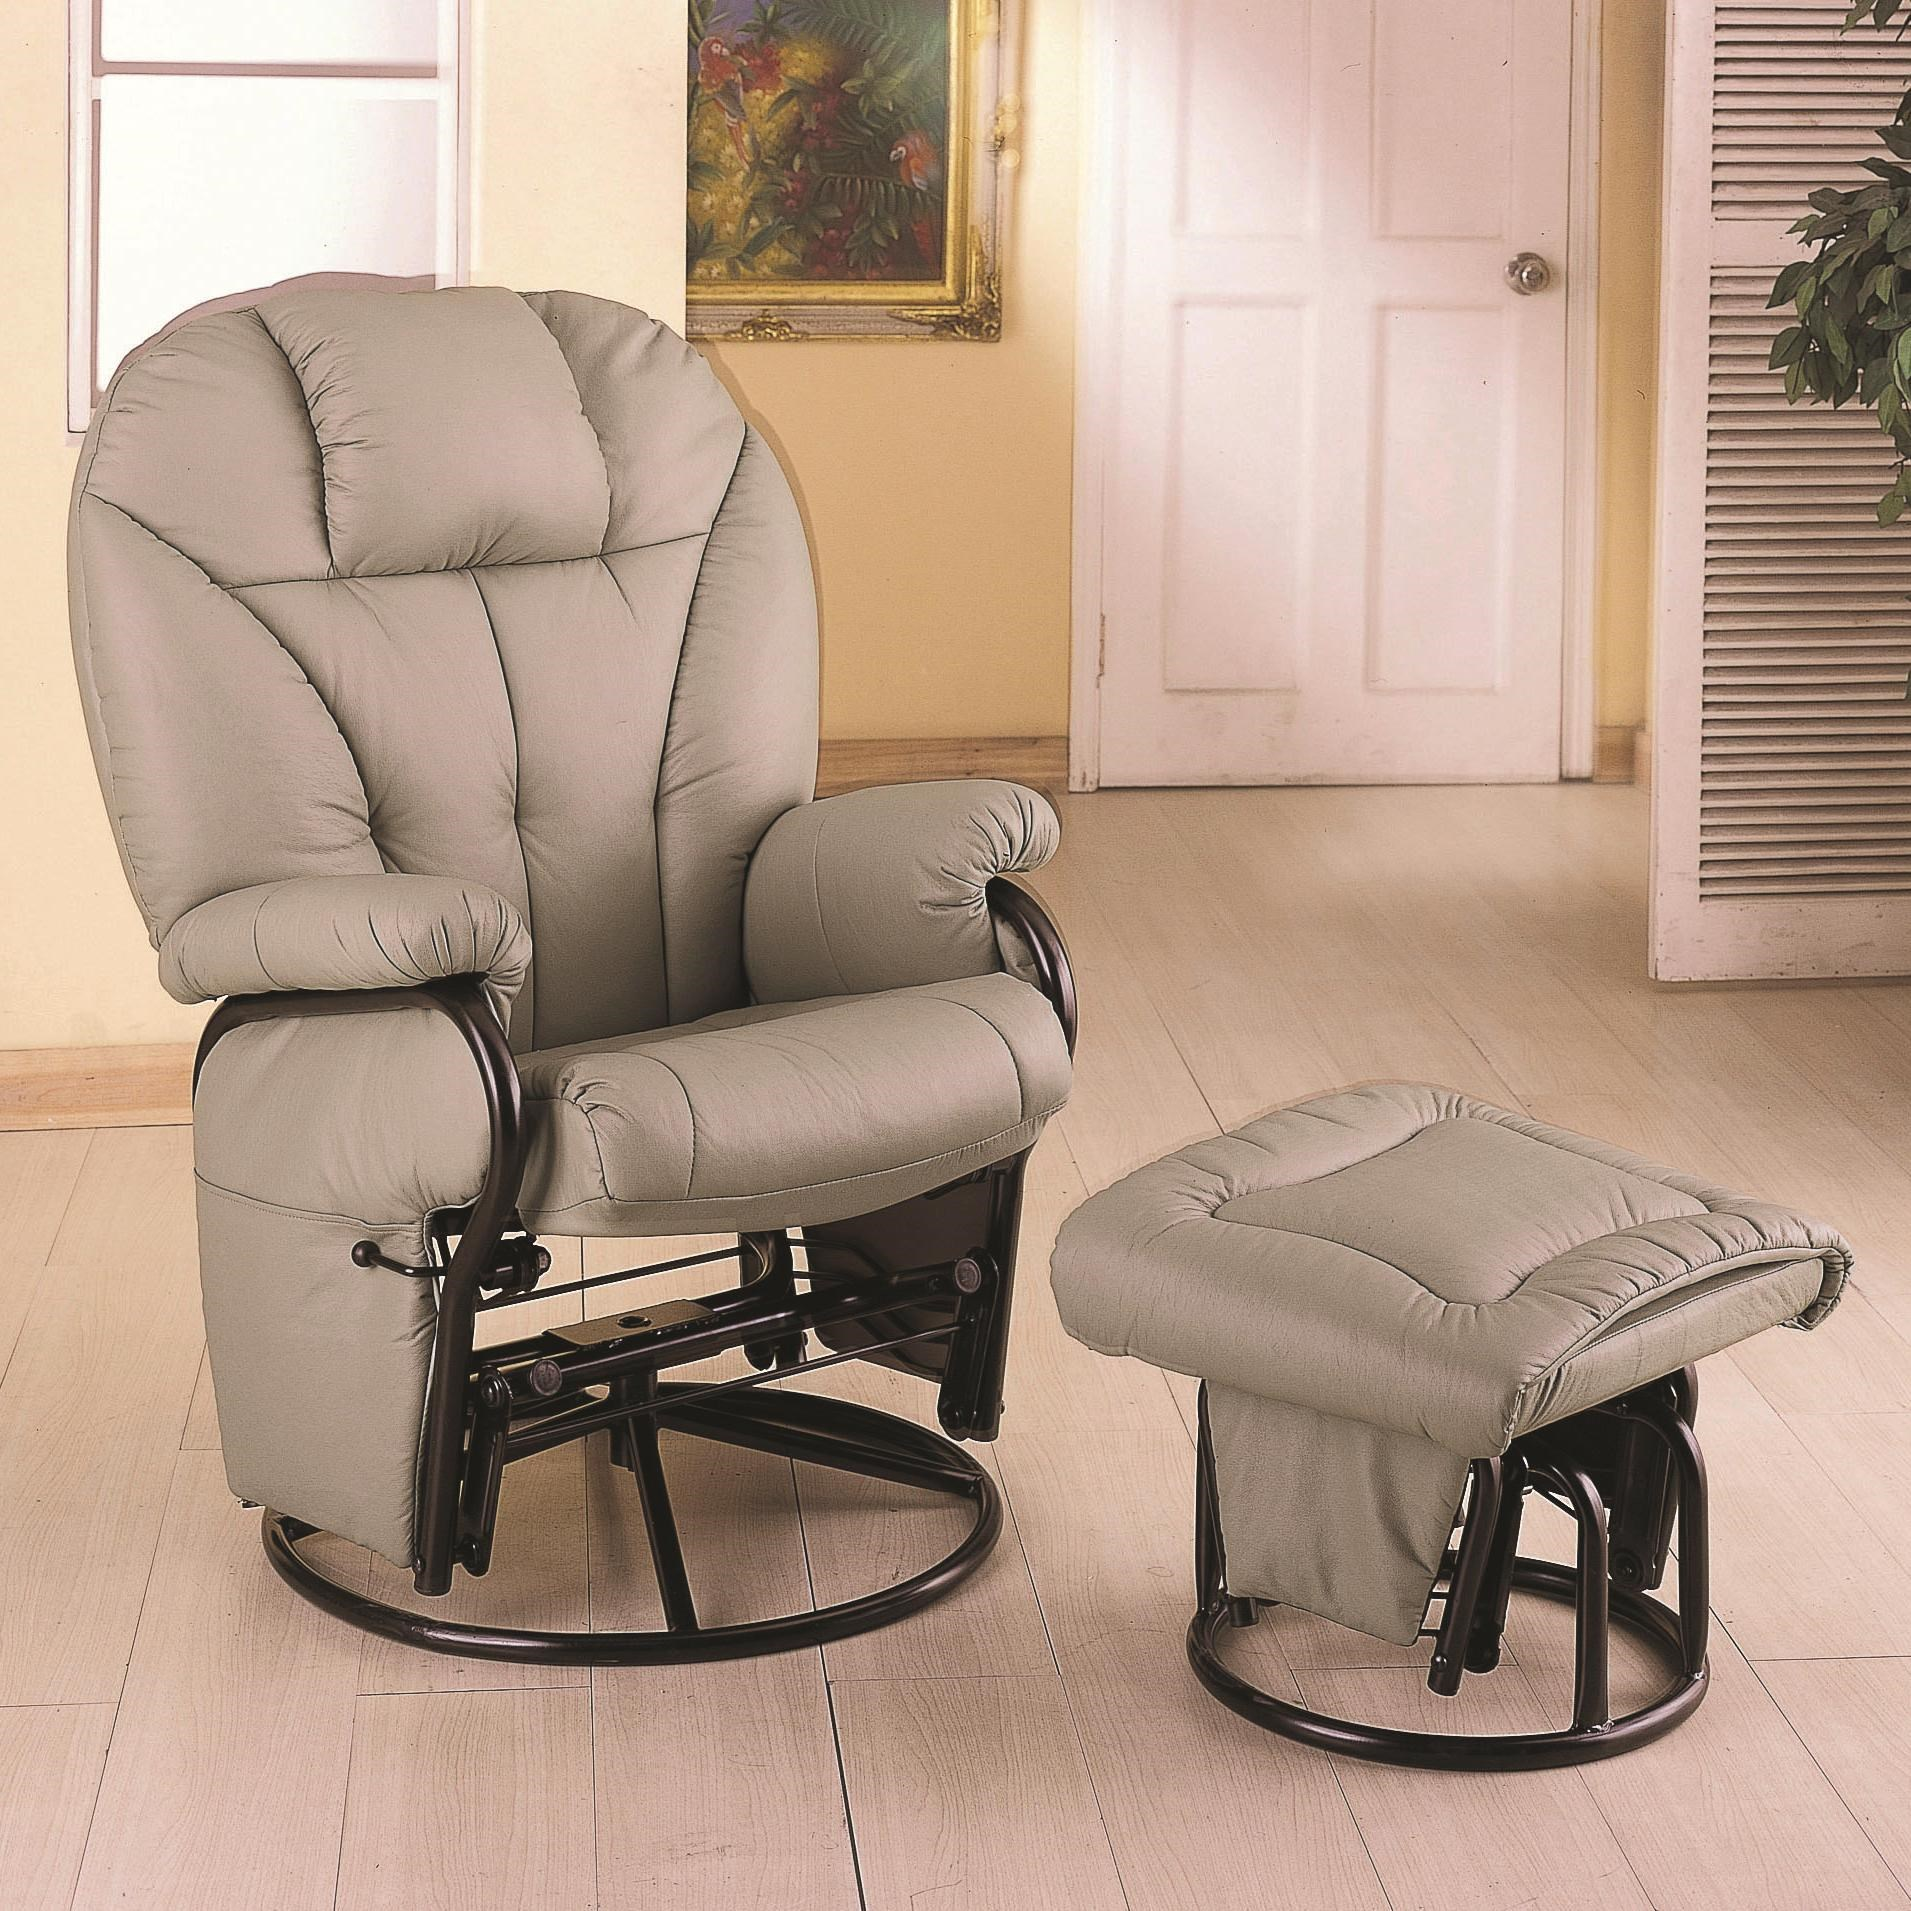 Coaster Recliners With Ottomans Leatherette Recliner With Matching Ottoman    Coaster Fine Furniture